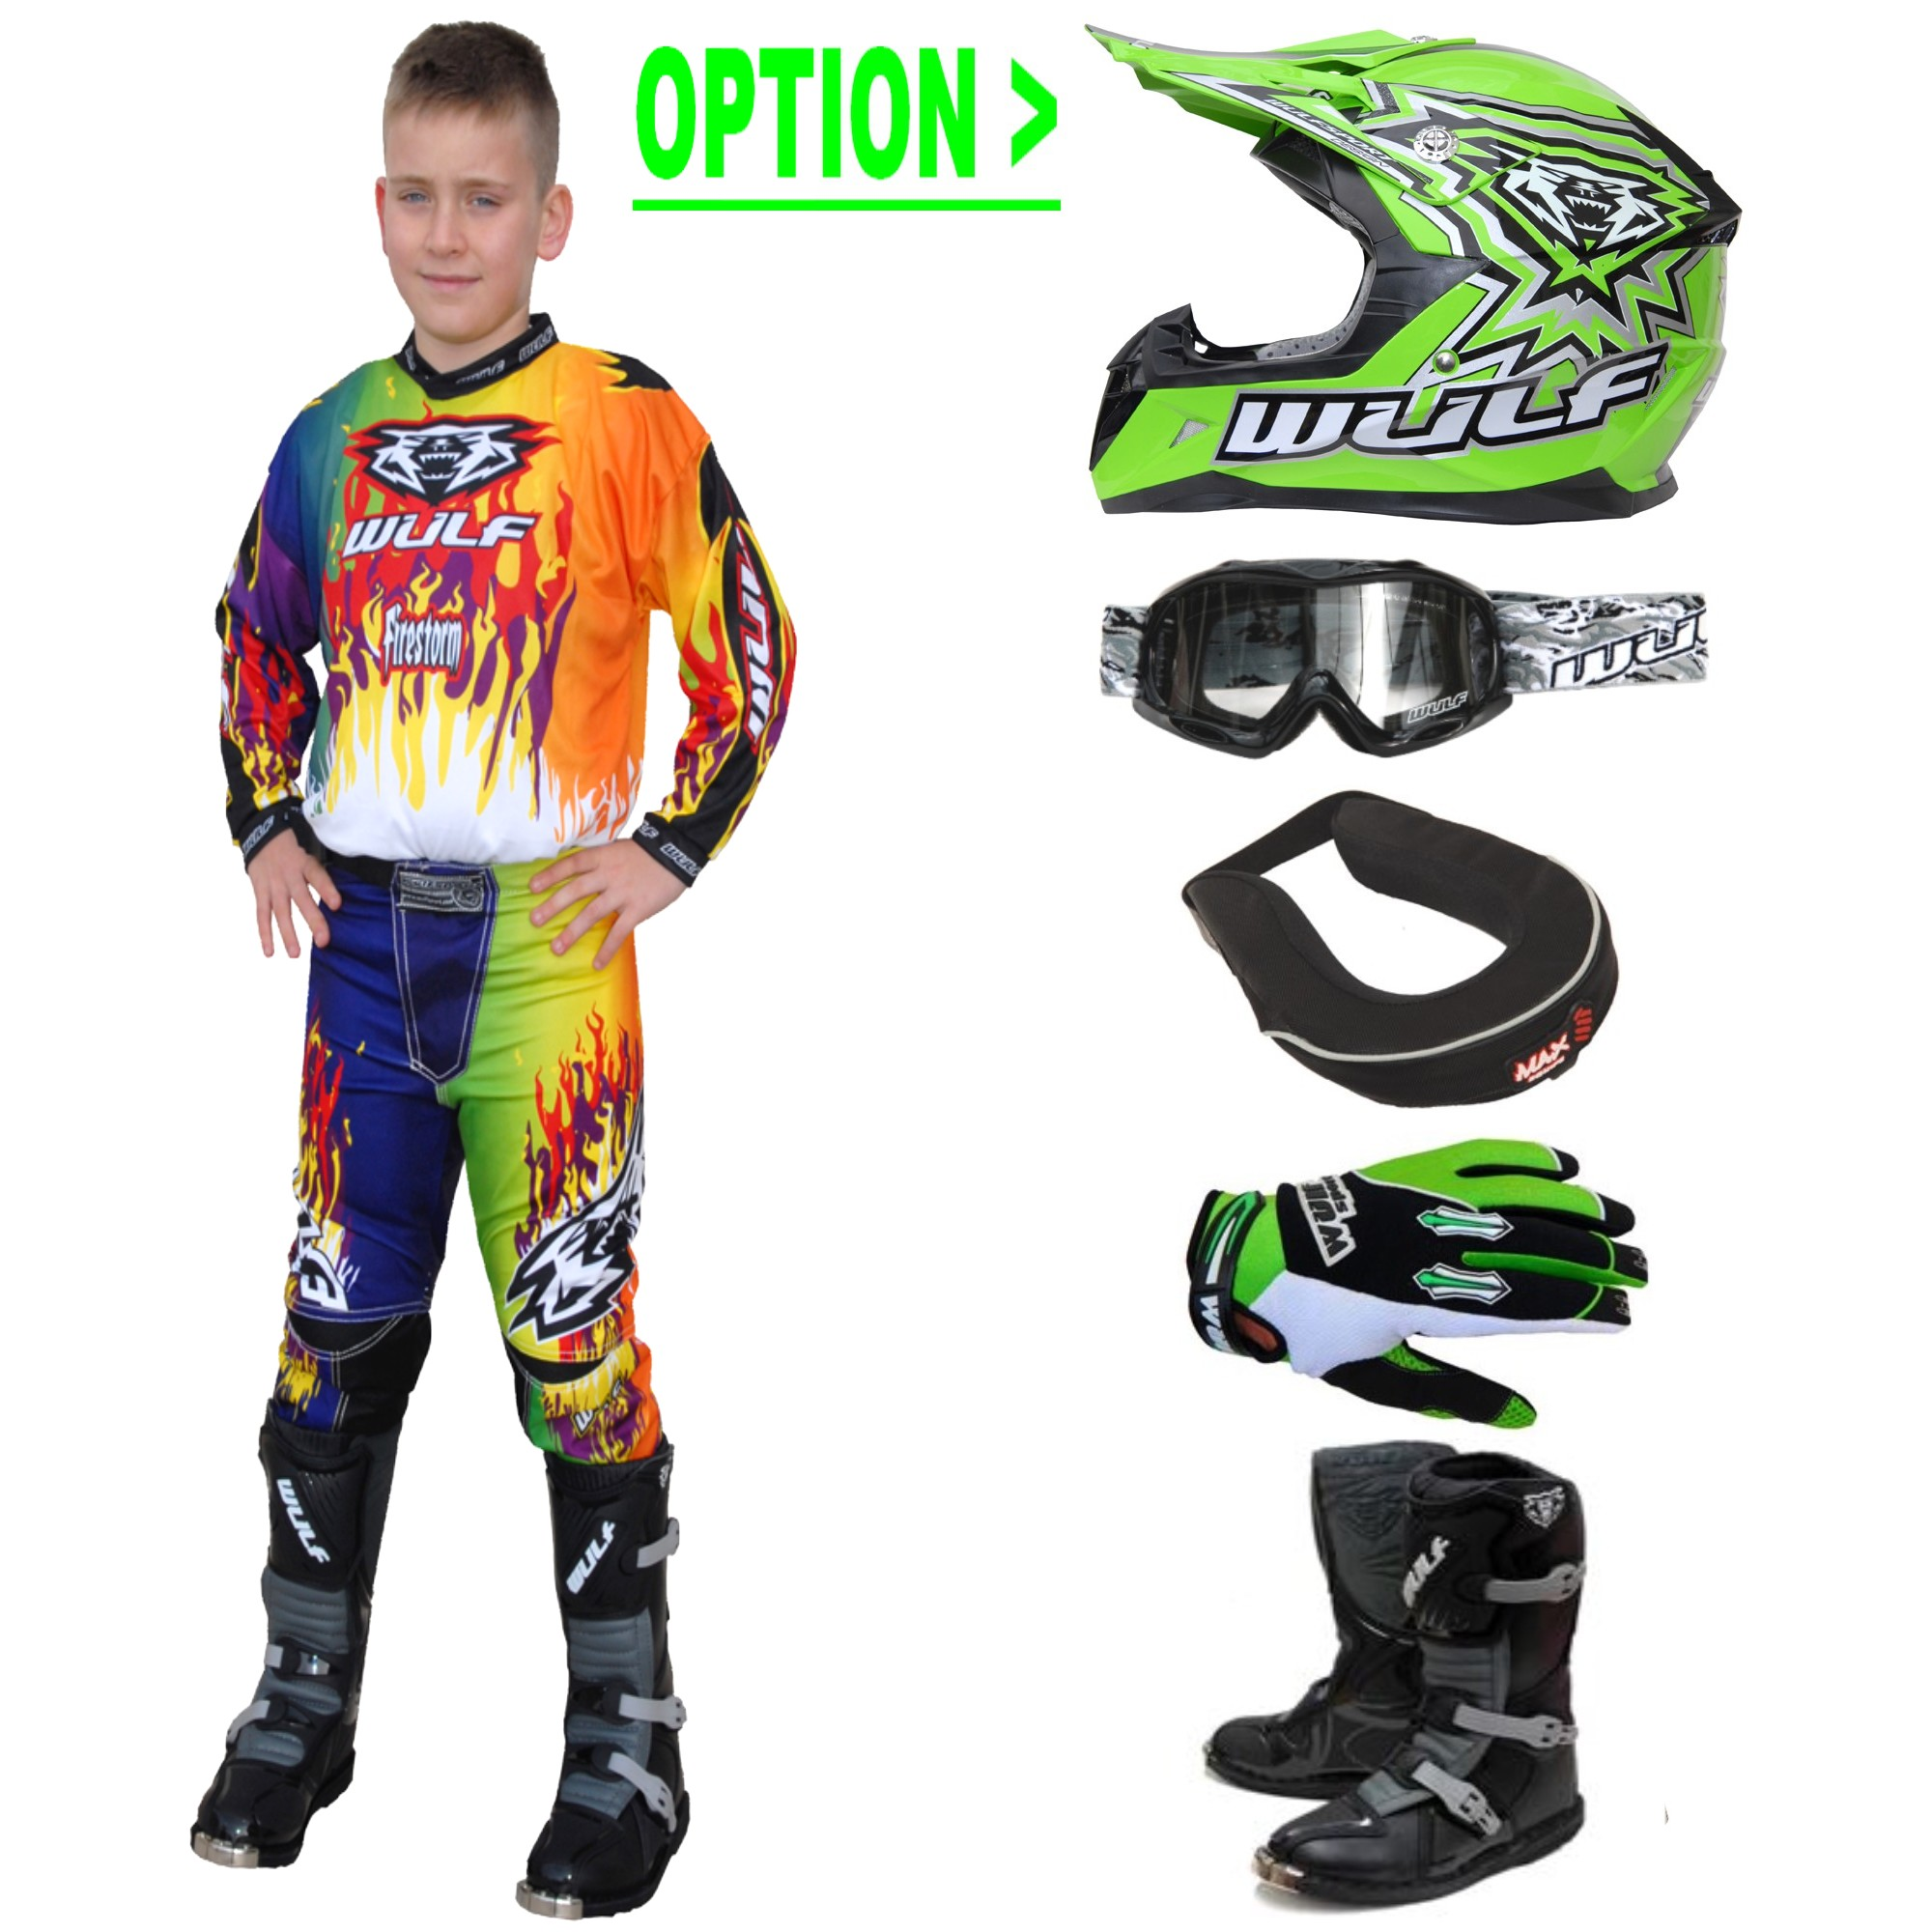 TENUE A OPTIONS ENFANT WULFSPORT STORM MULTI.V 4 à 14a T20 à 28